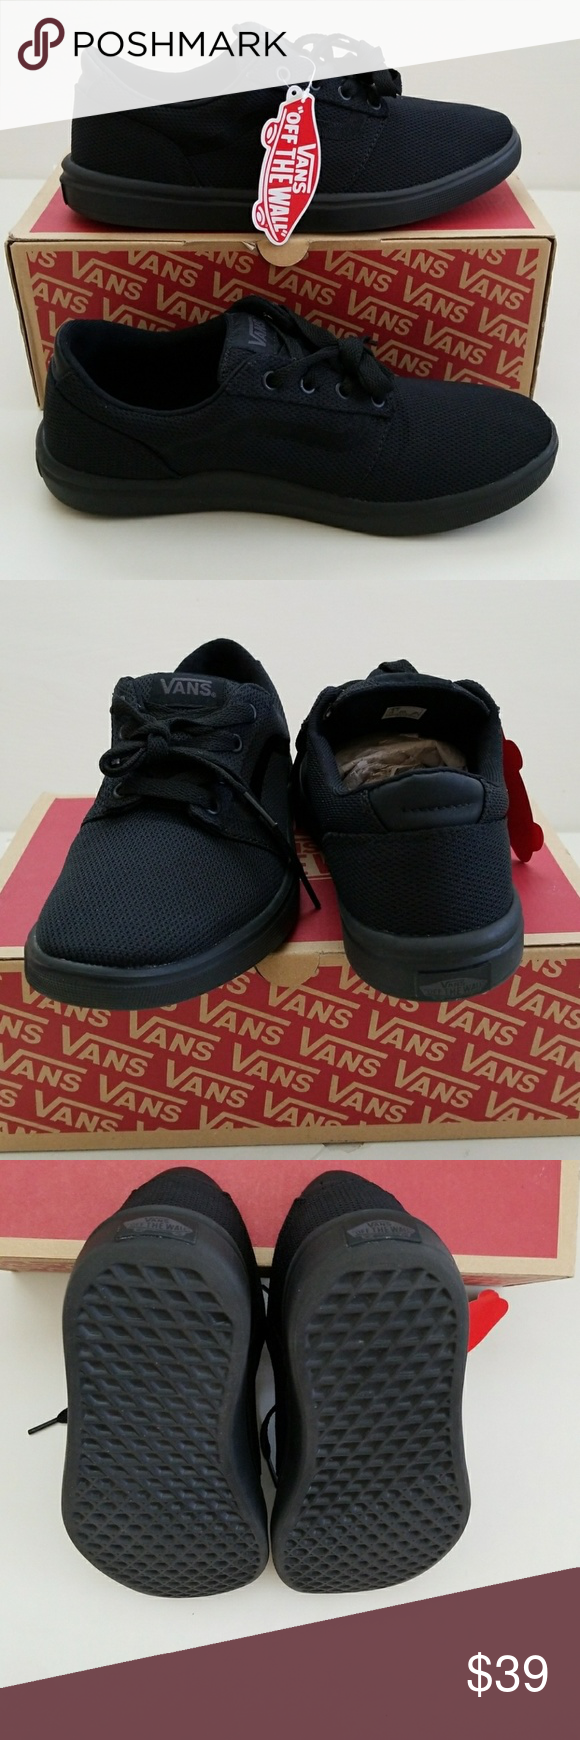 d895ed94f8 NWT Men s Vans Super Lightweight New men s Vans lightweight and cushy foot  bed for added comfort. These were store sample shoes.